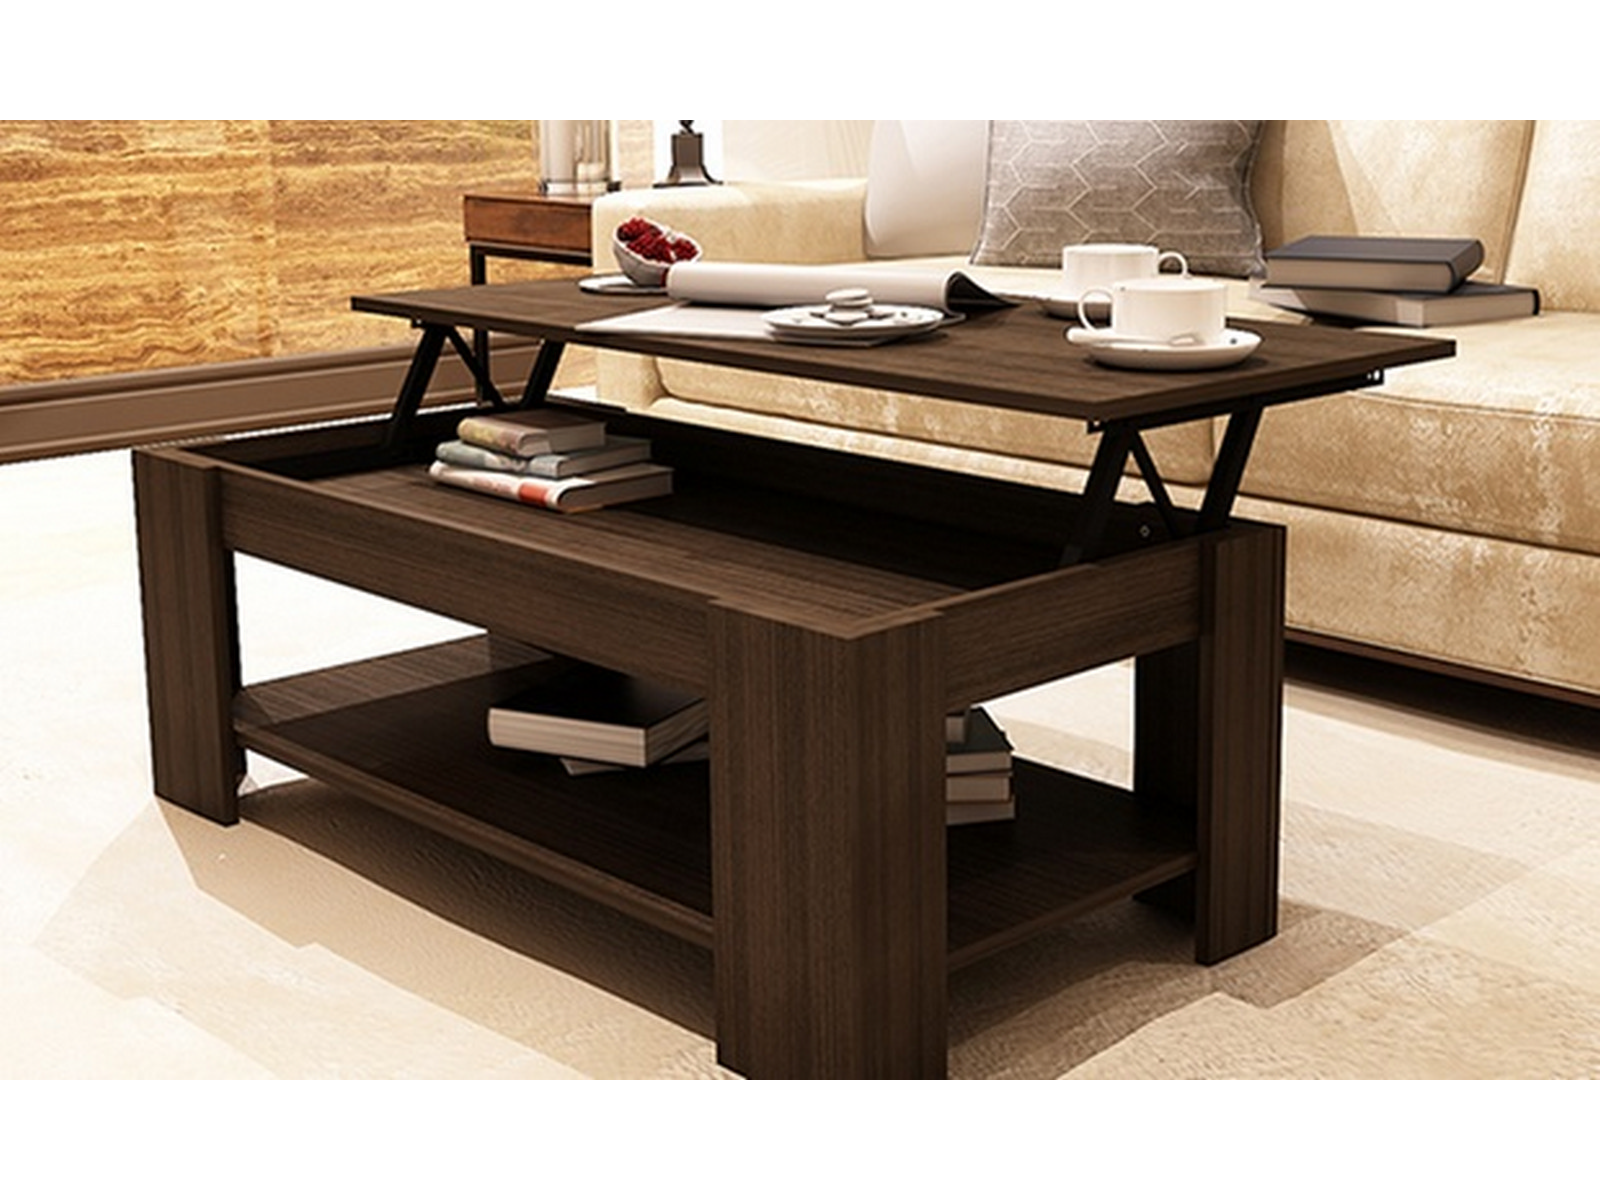 New caspian espresso lift up top coffee table with storage shelf Lift top coffee tables storage